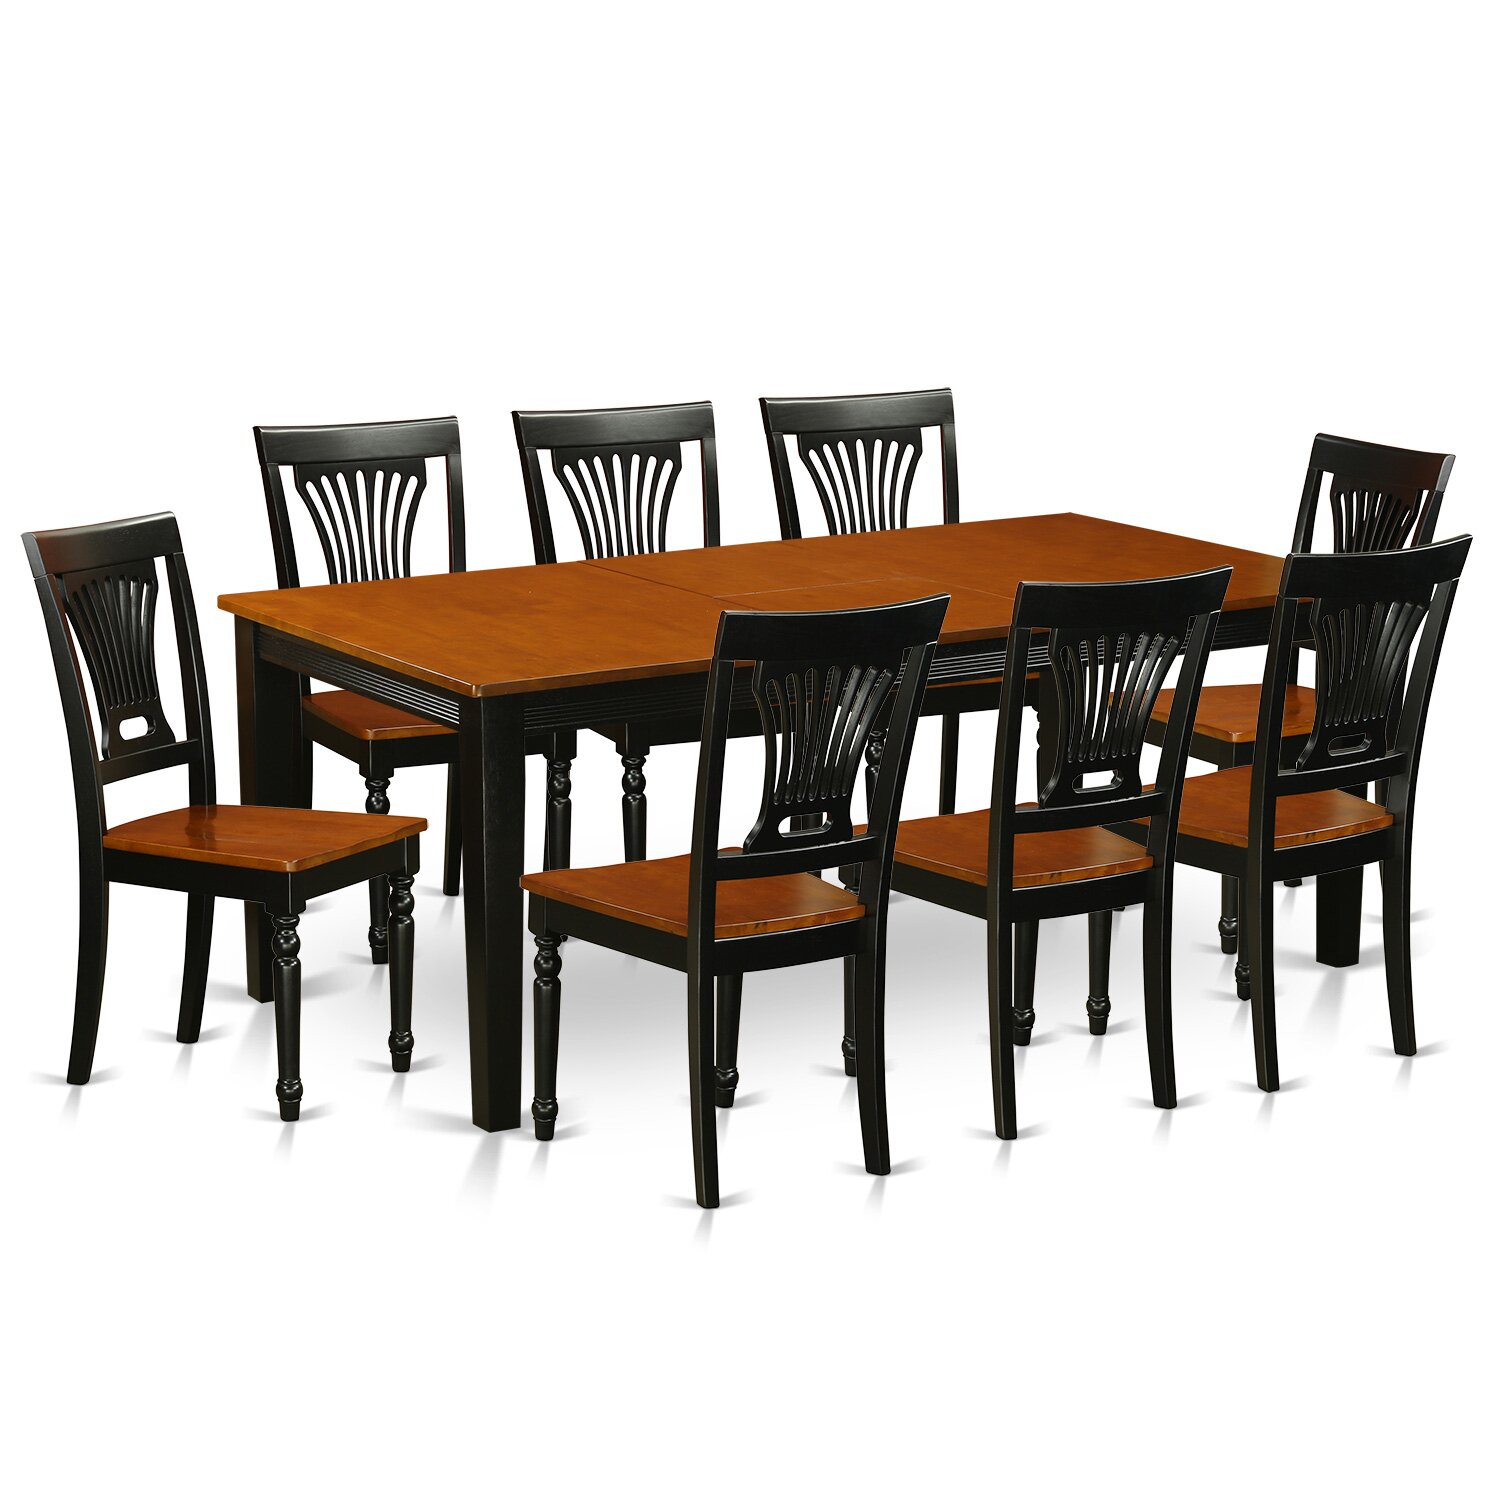 Wooden importers quincy 9 piece dining set wayfair for Wood dining room furniture